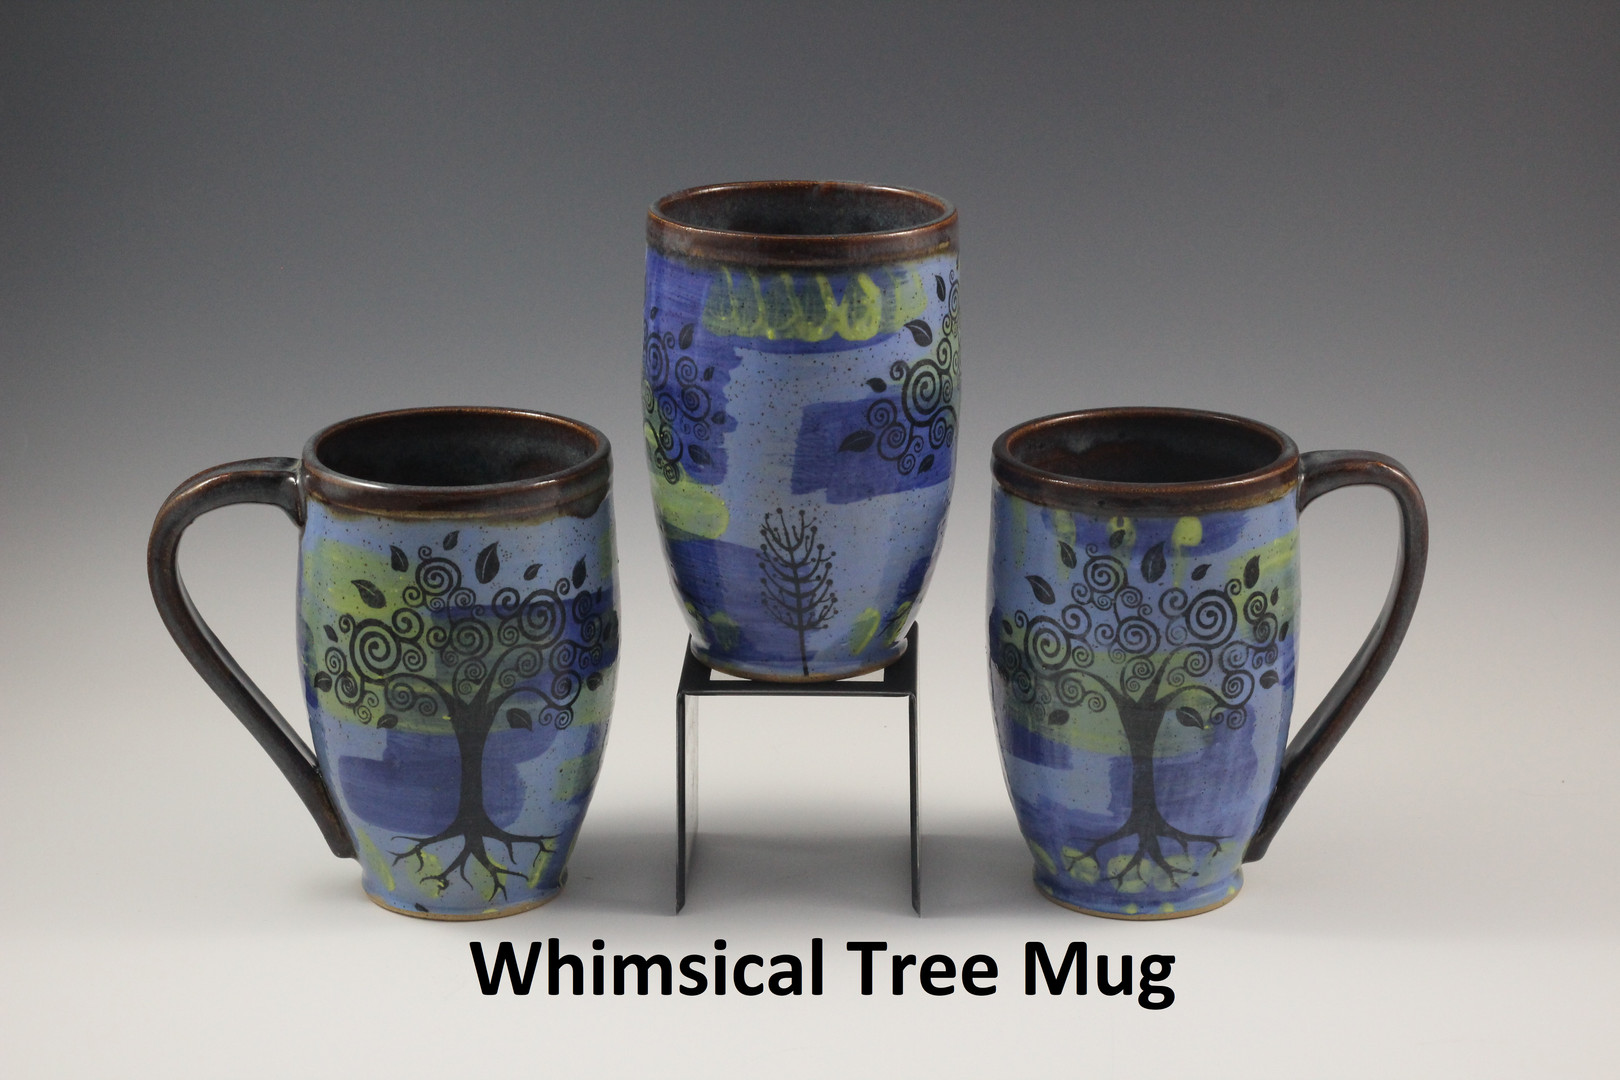 Whimsical Tree Mugs